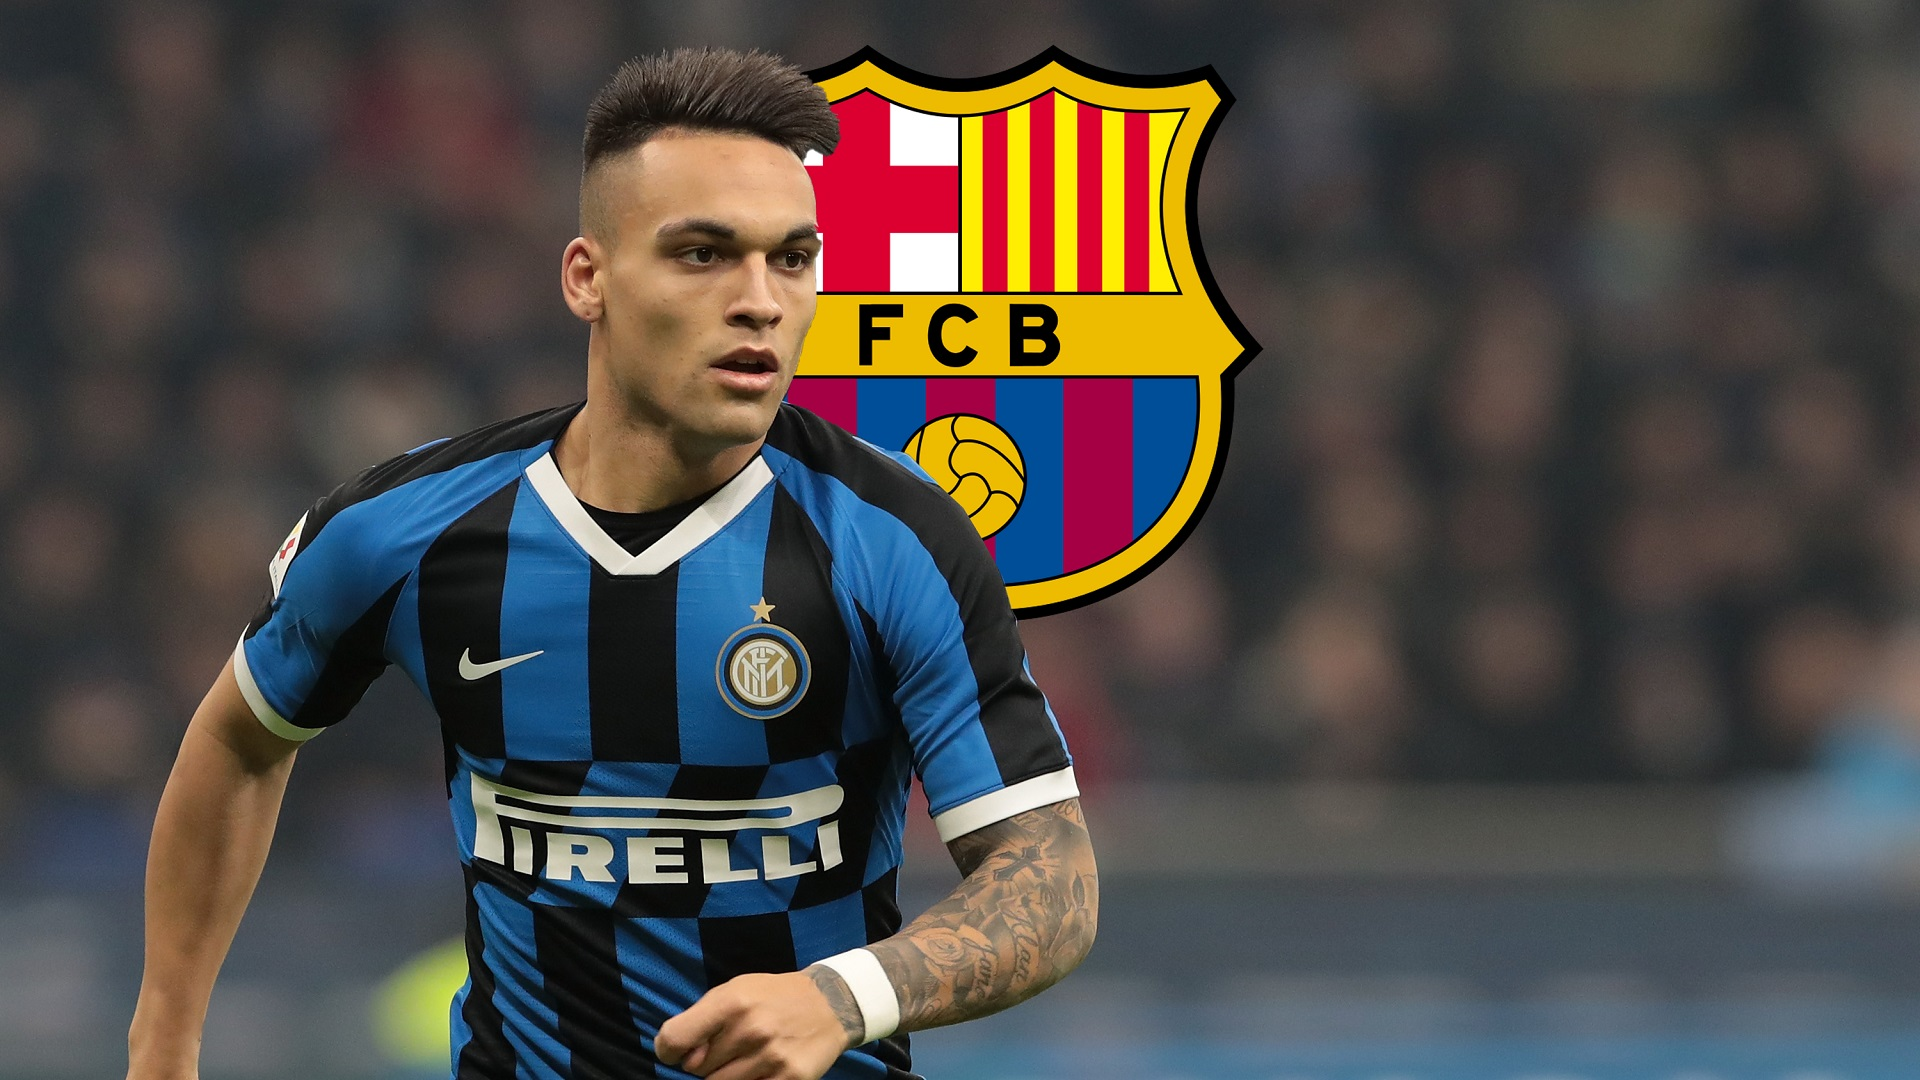 Inter's Marotta 'optimistic' Lautaro will not make Barcelona move